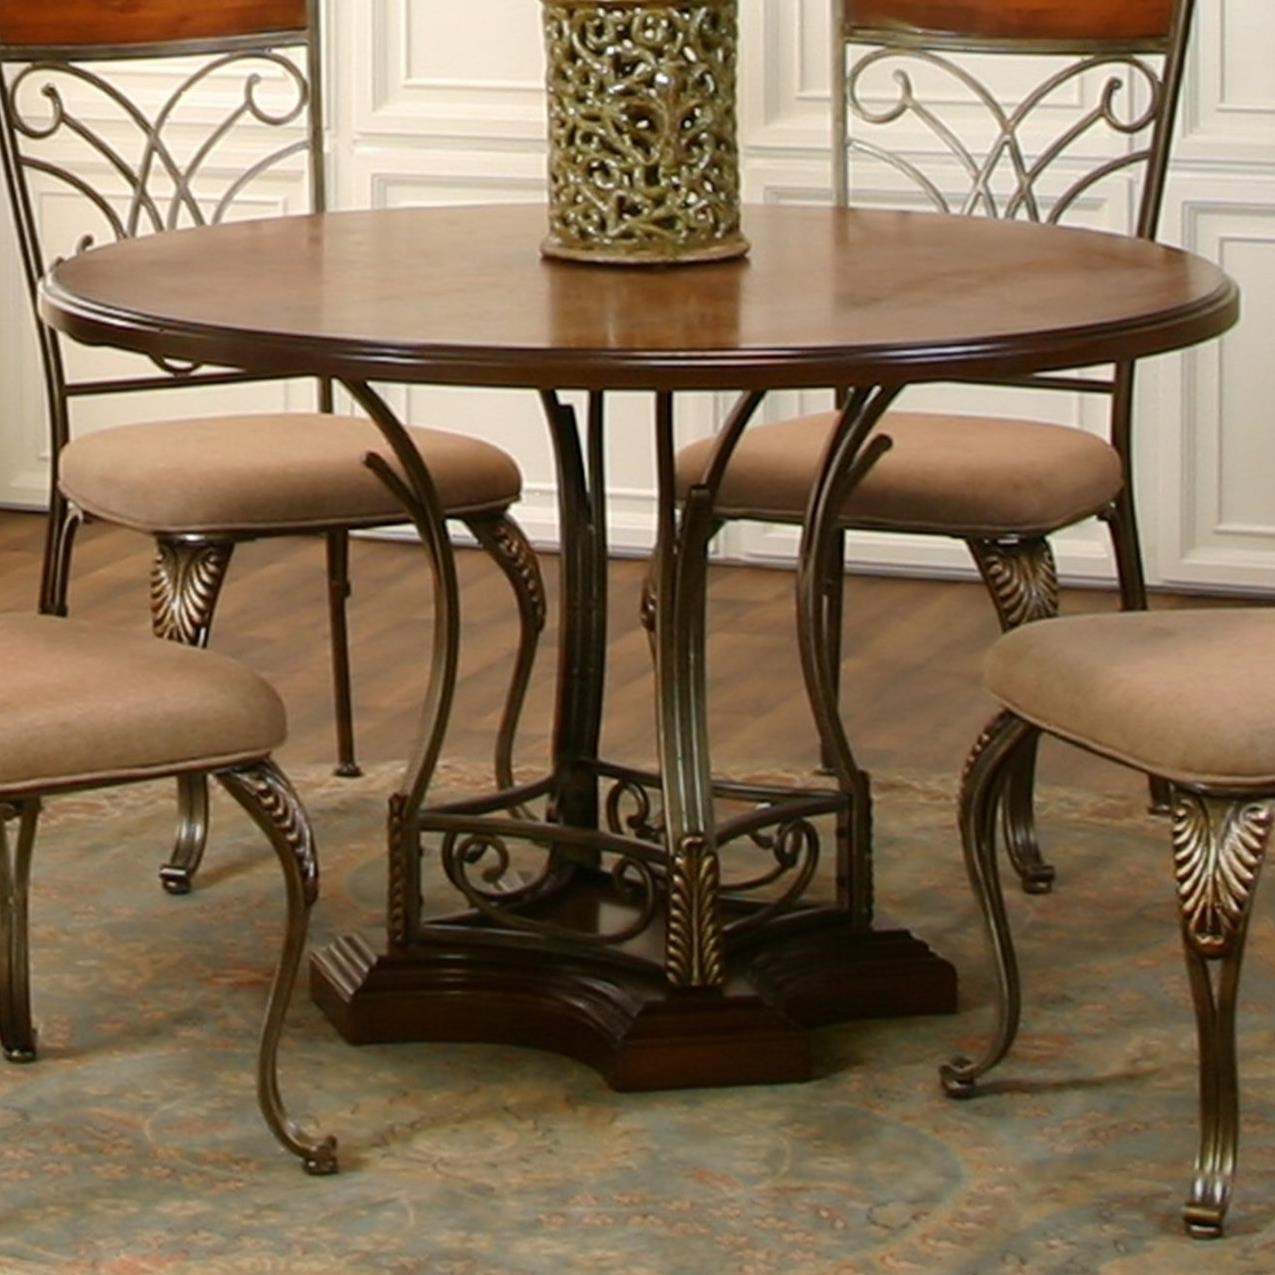 Cramco Inc Harlow Transitional 48 Quot Round Metal Wood Table